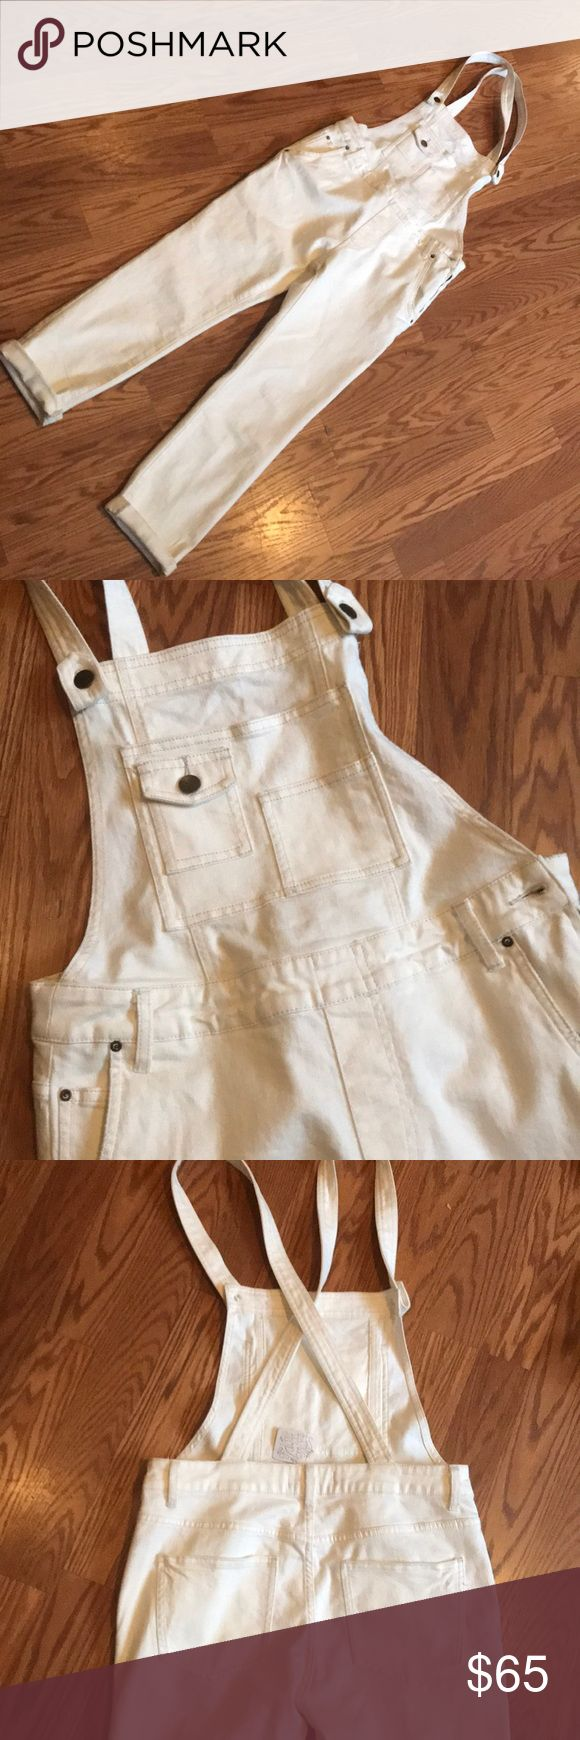 NWT FREE PEOPLE OVERALLS sz28 New with tags free people white overalls. Size 28. Super soft denim with stretch. Never been worn, but they have accumulated some dust that will easily be removed with first wash or by dry cleaners. Free People Jeans Overalls